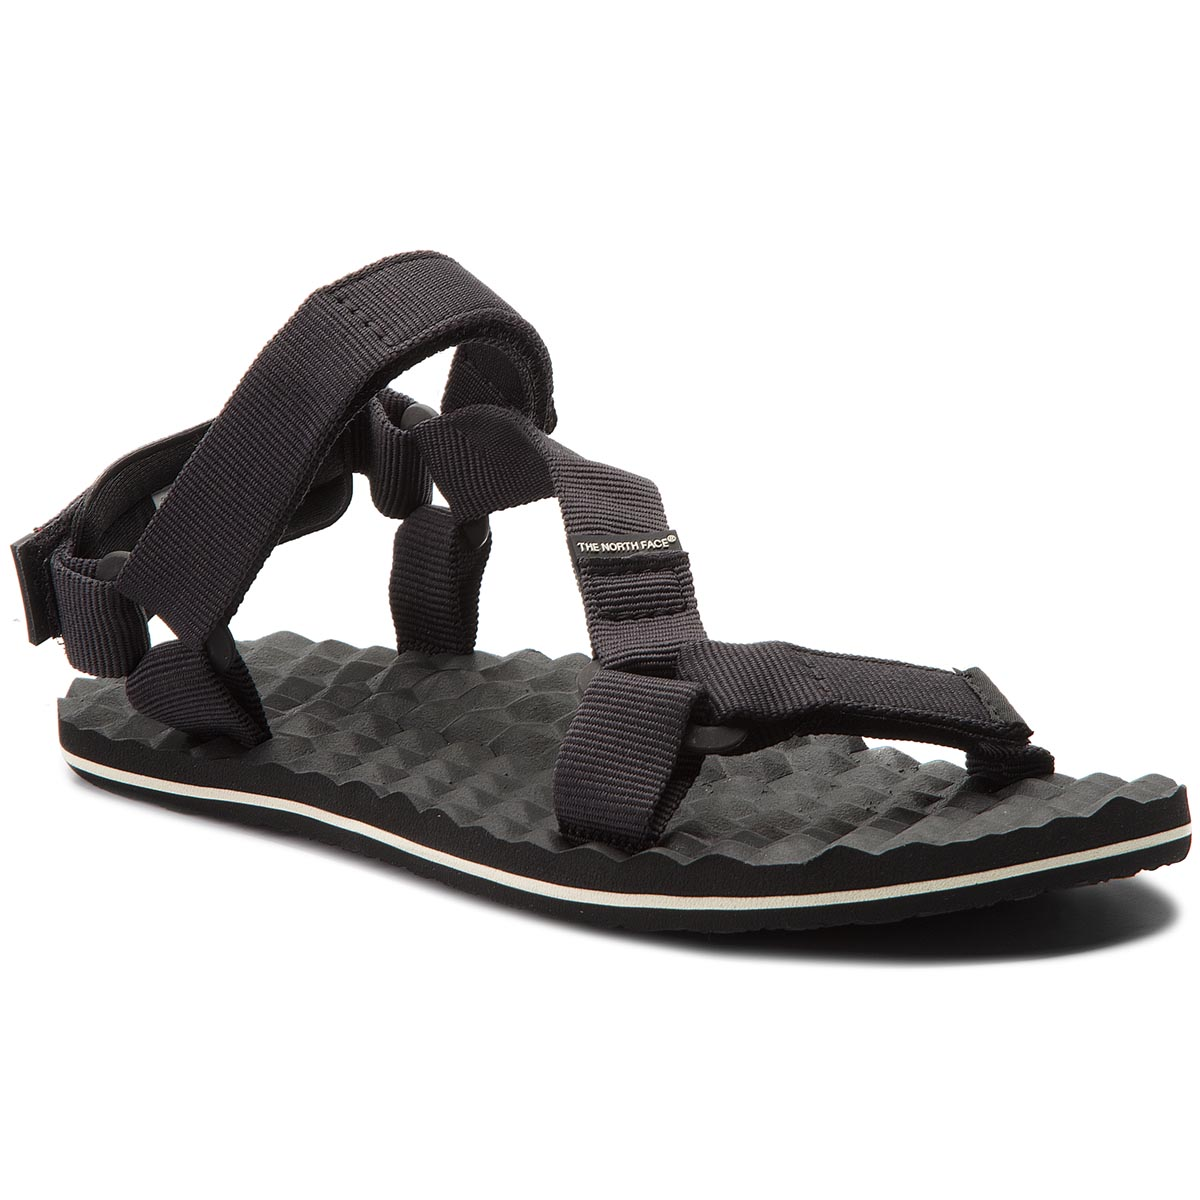 Sandale THE NORTH FACE - Base Camp Switchback Sandal T92Y98LQ6 Tnf Black/Vintage White